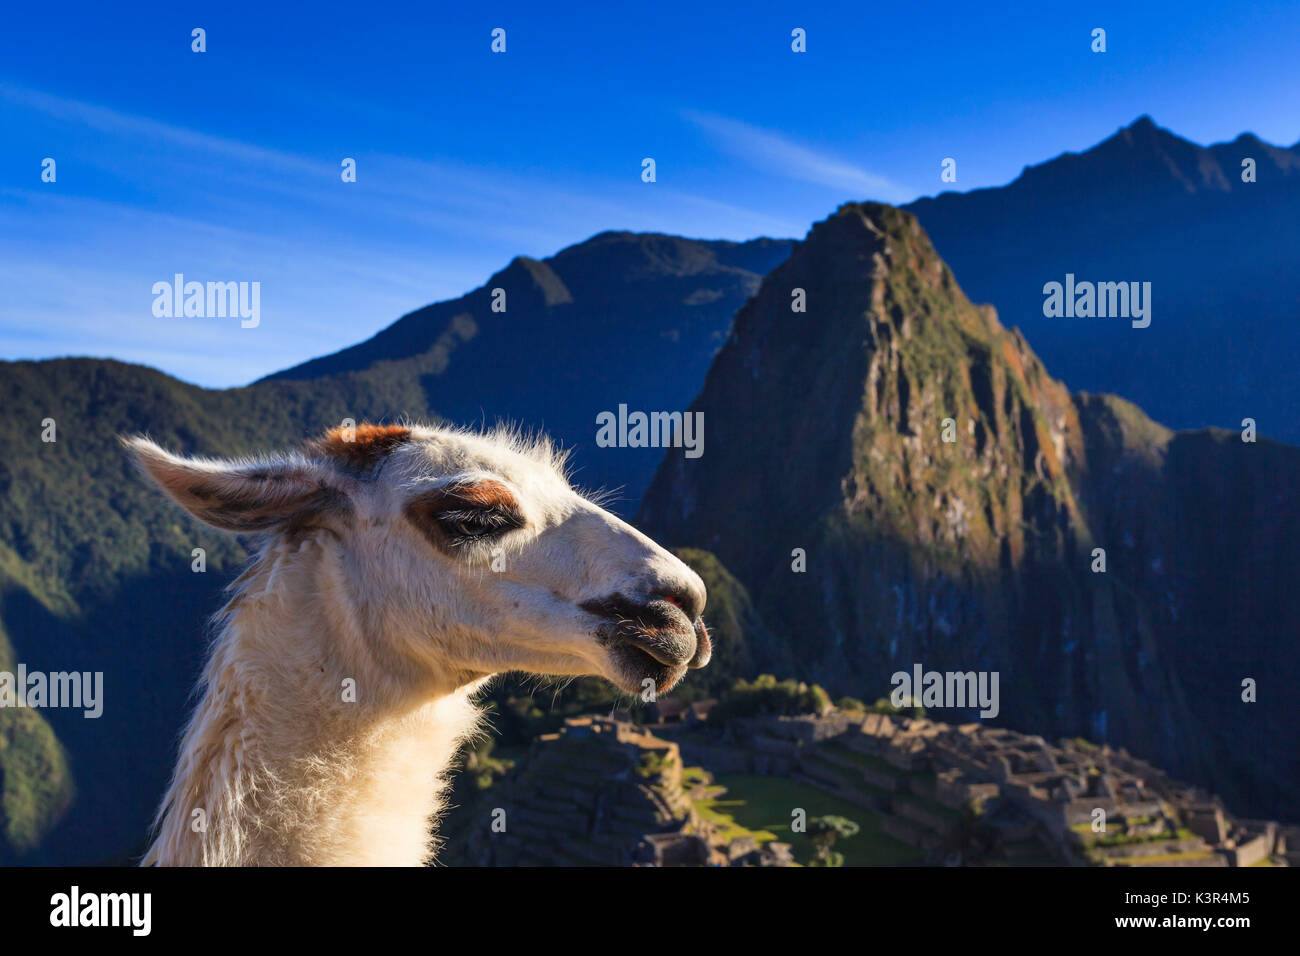 Llama presso il celeberrimo sito archeologico di Machu Picchu nella regione di Cusco, Provincia di Urubamba, Machupicchu District, Perù, Sud America Immagini Stock